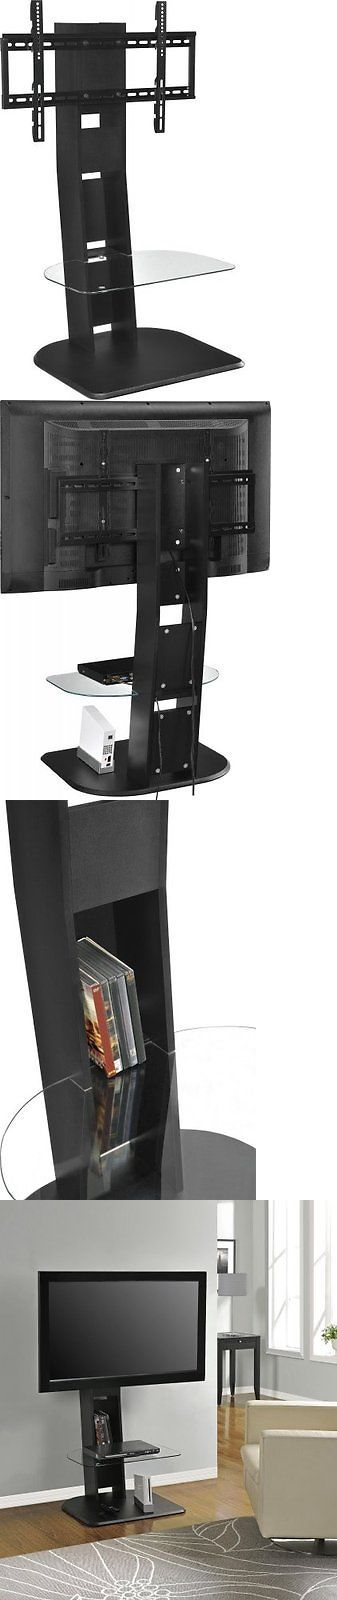 Entertainment Units TV Stands: Altra Furniture Galaxy Tv Stand With Mount For Tvs Up To 50-Inch, Black Finish BUY IT NOW ONLY: $66.84